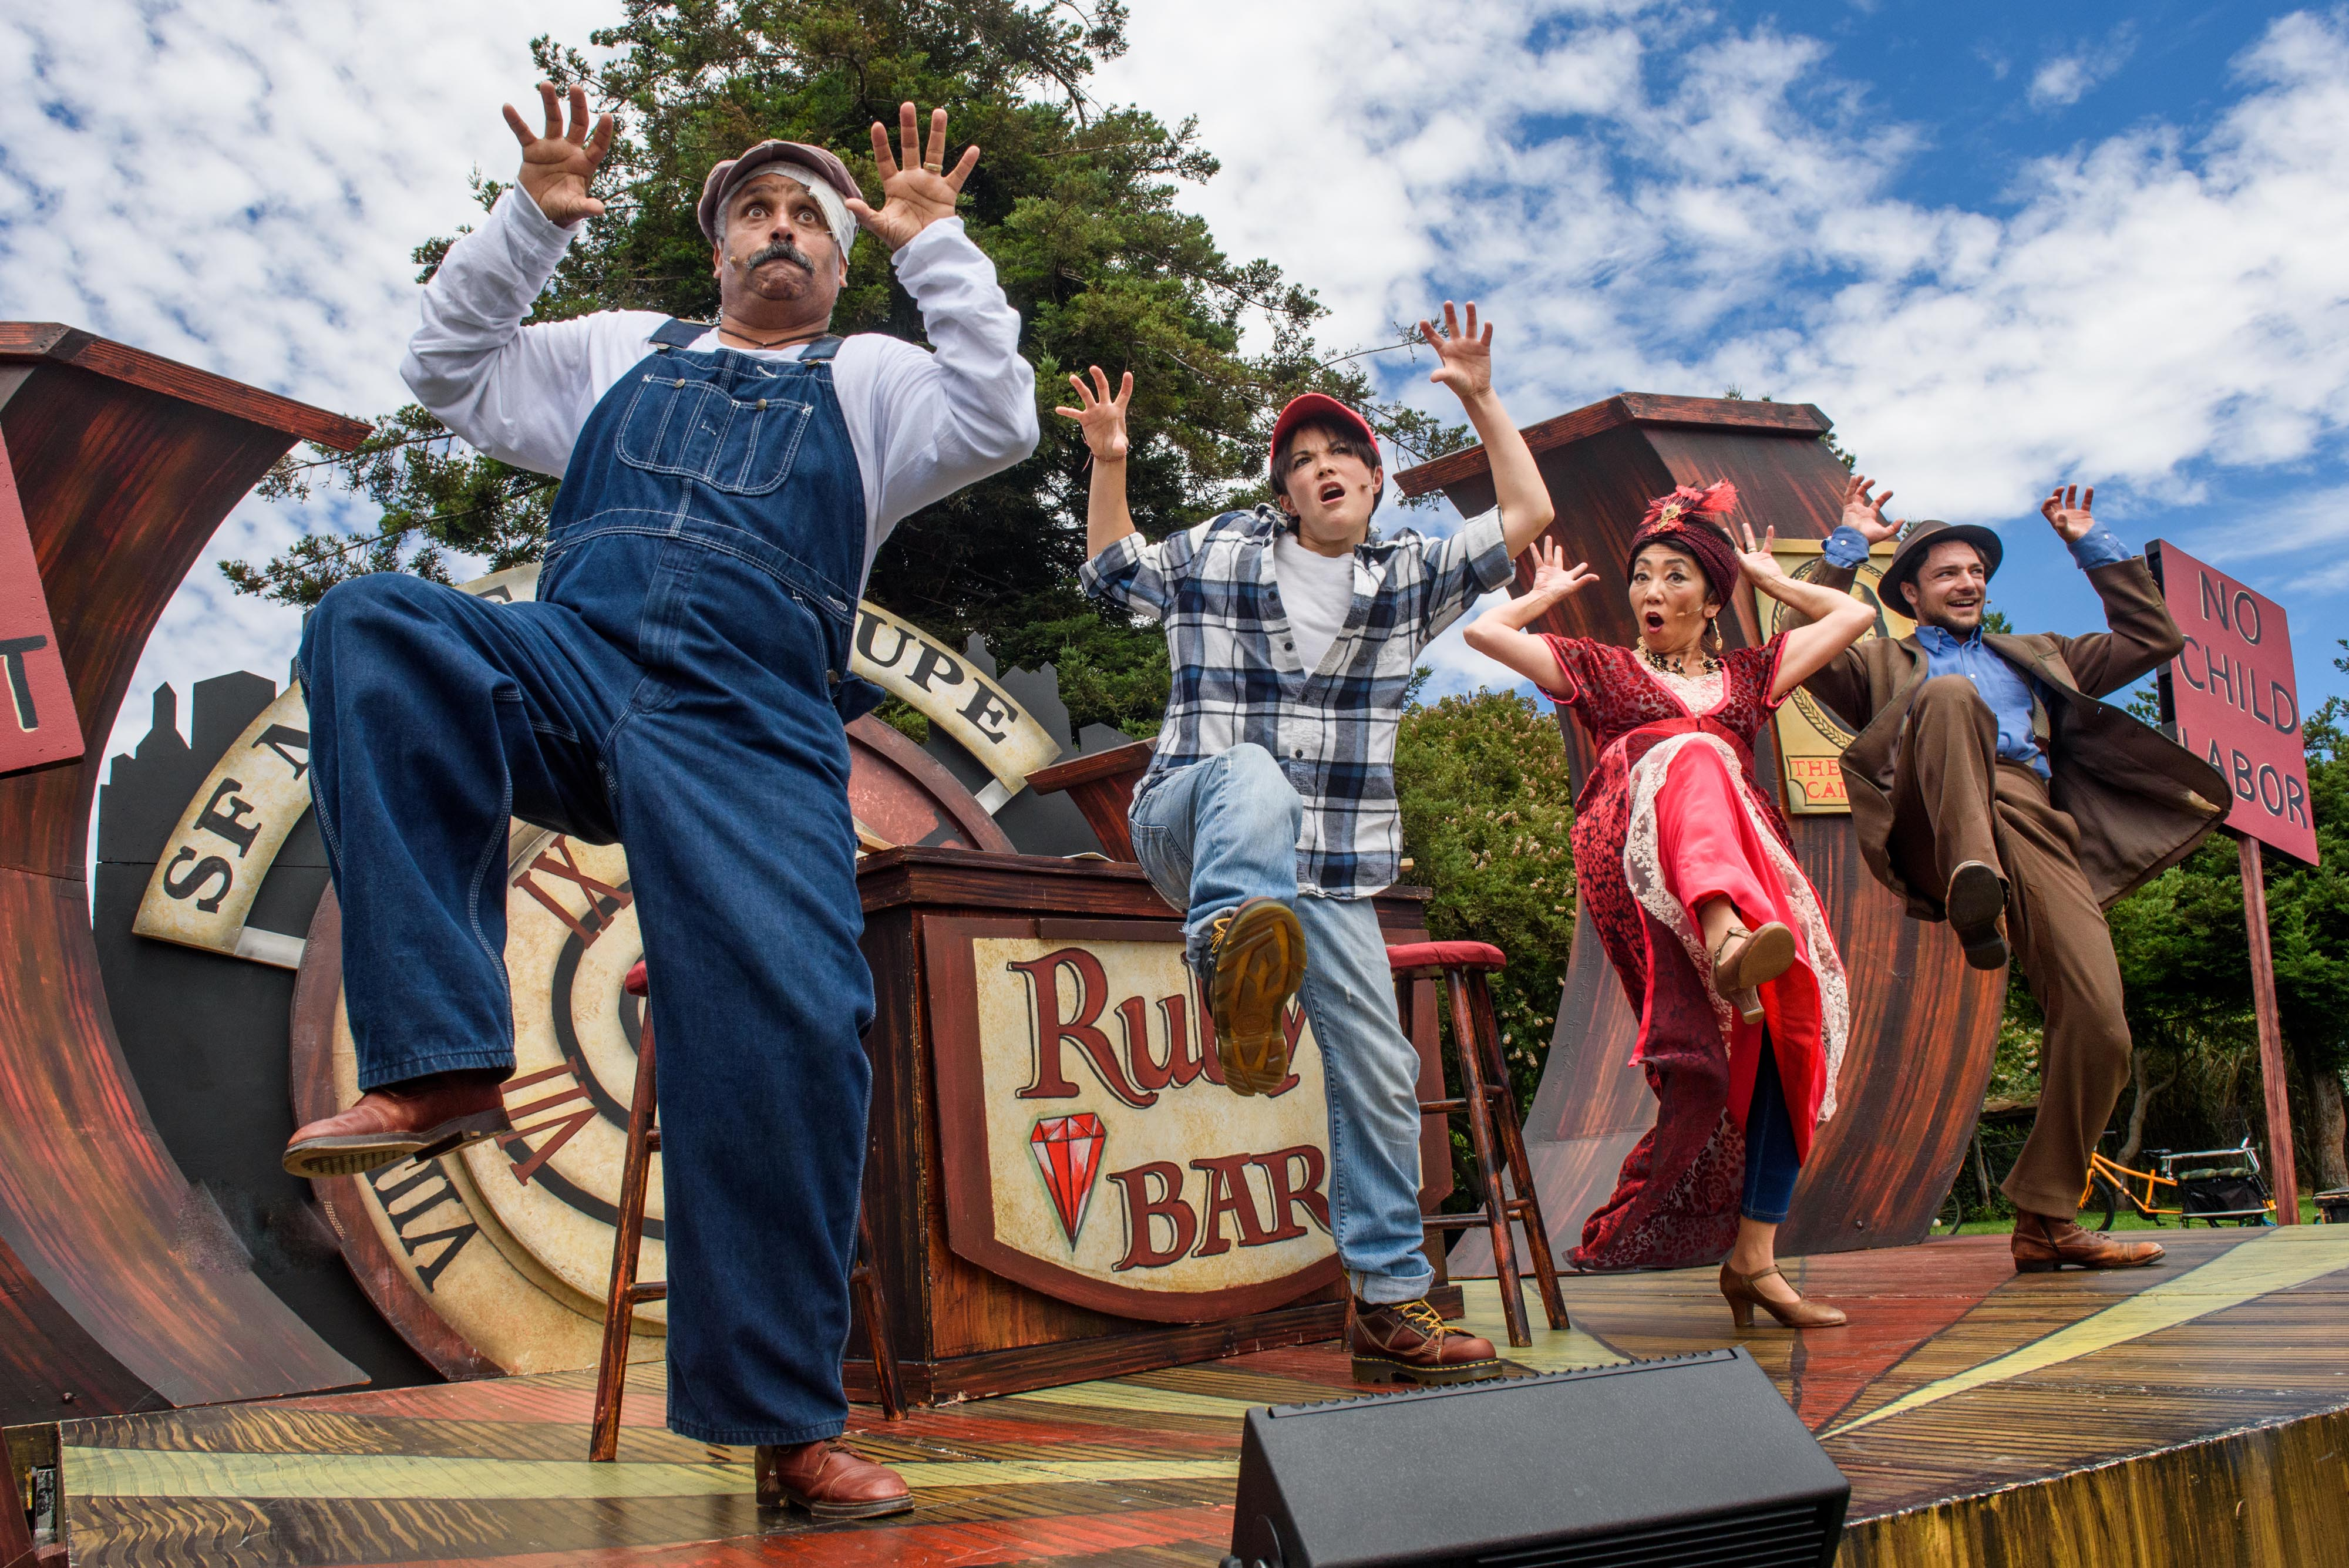 Four mime troupe members dance in unison on an outdoor stage. Bob finds herself on Election Night 1912 in Ruby's Bar with a group of socialists!